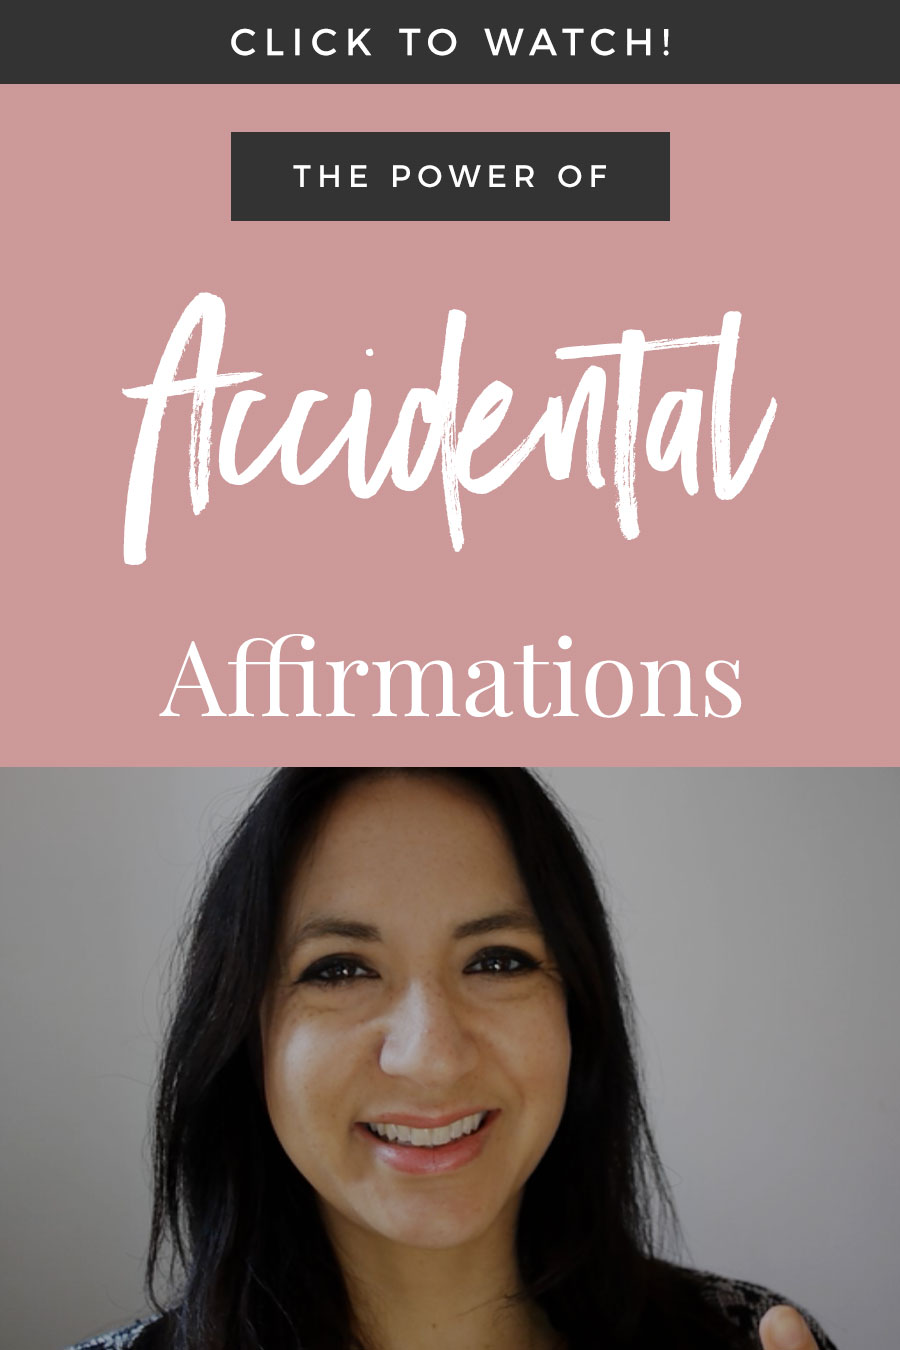 The Power Of Accidental Affirmations